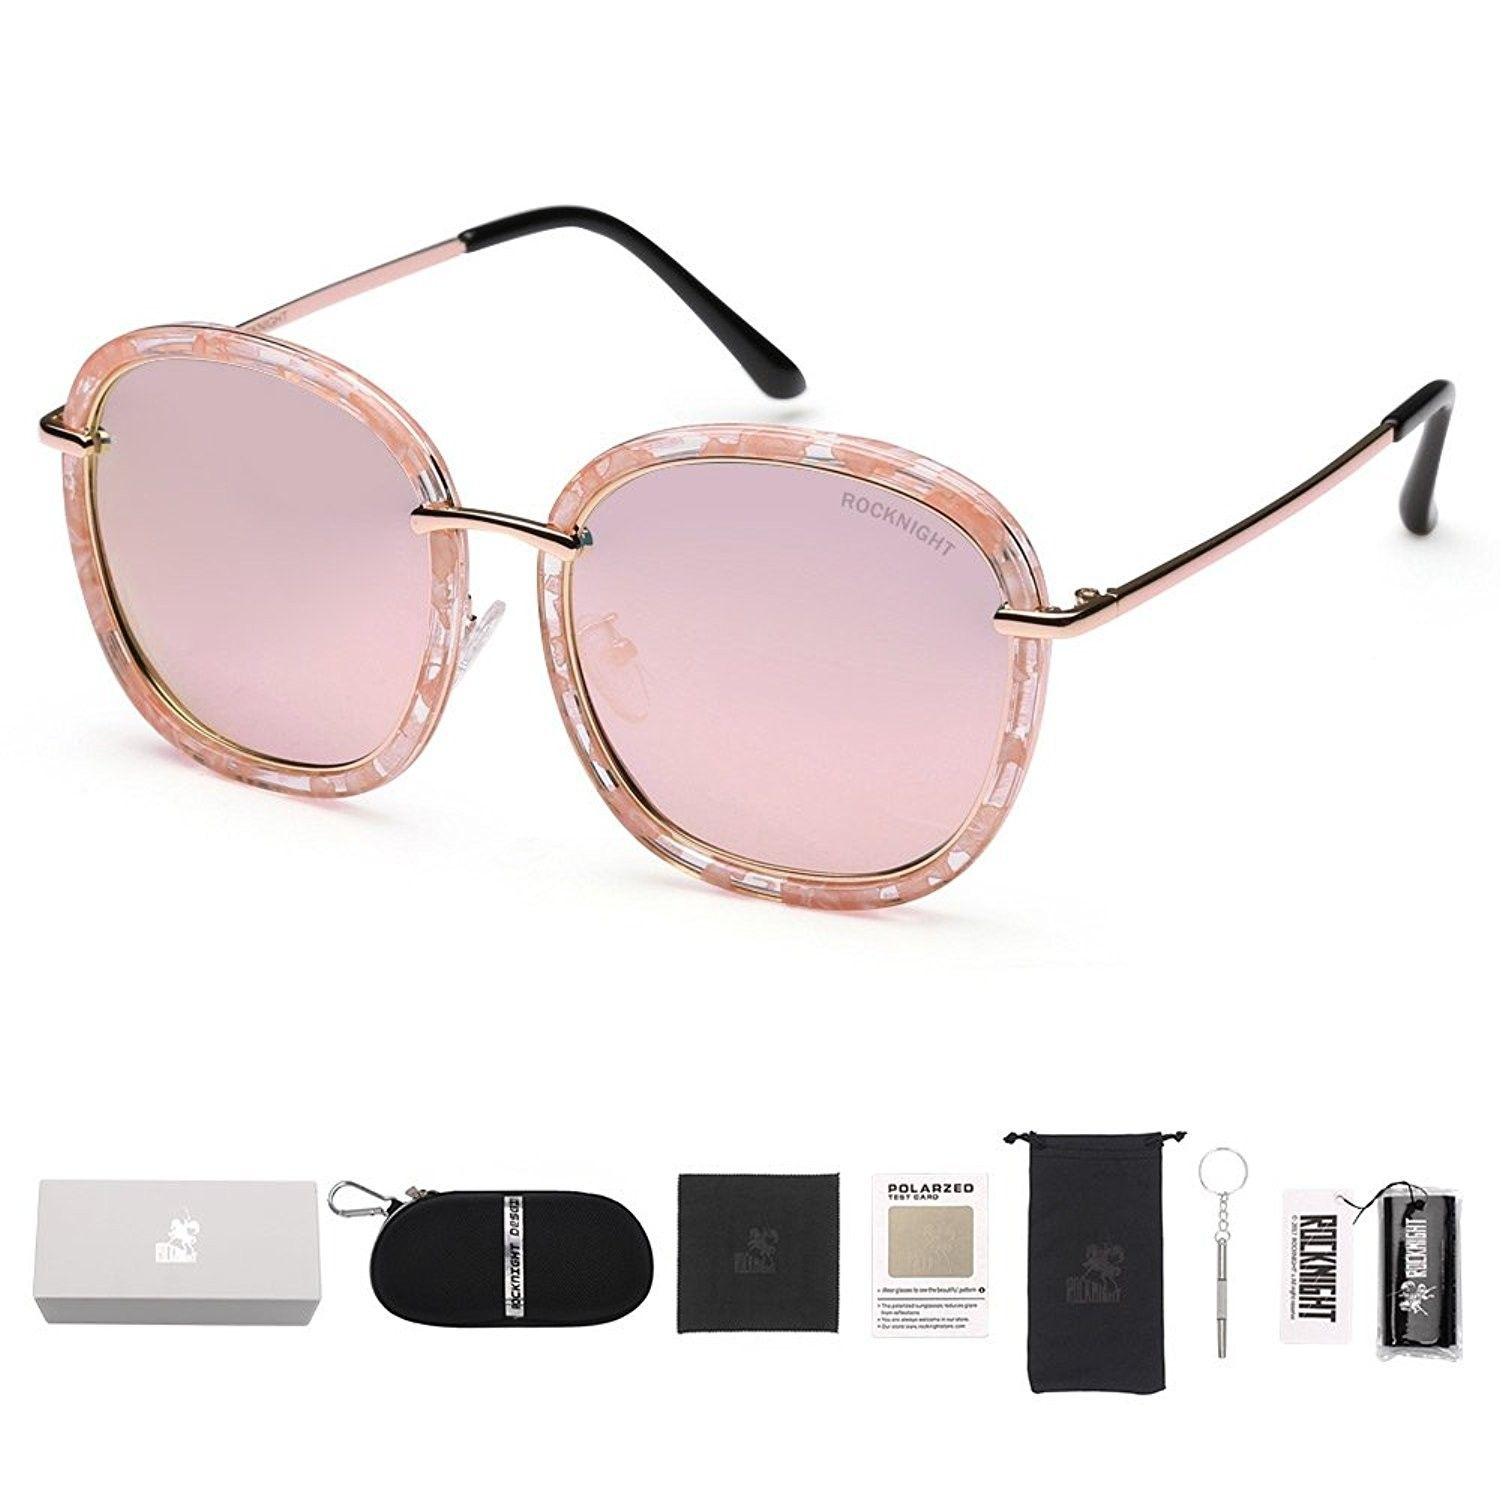 d314629a427 Rocknight Oversized Round Sunglasses Polarized Women Pink Mirrored Lens  Flower Frame Oval UV Protection Outdoor - CN1825C3N6Q - Women s Sunglasses